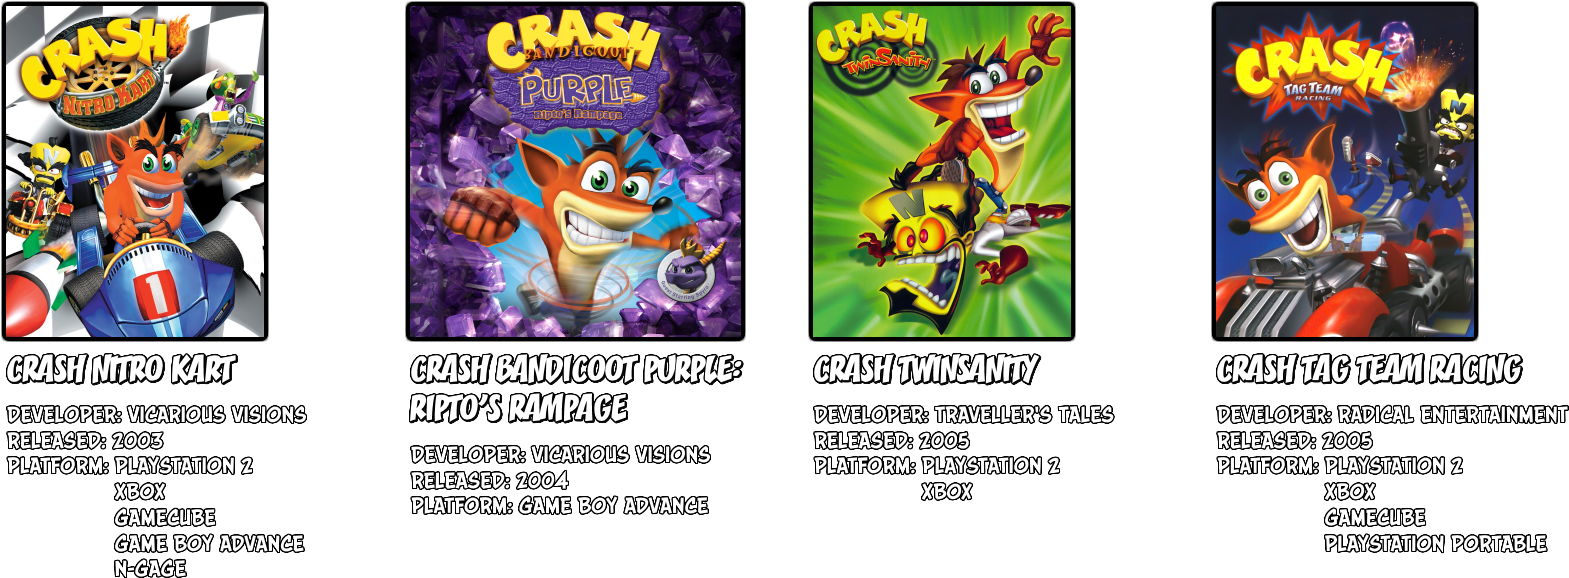 Download HD In Most Games, Crash Must Defeat Cortex And Foil